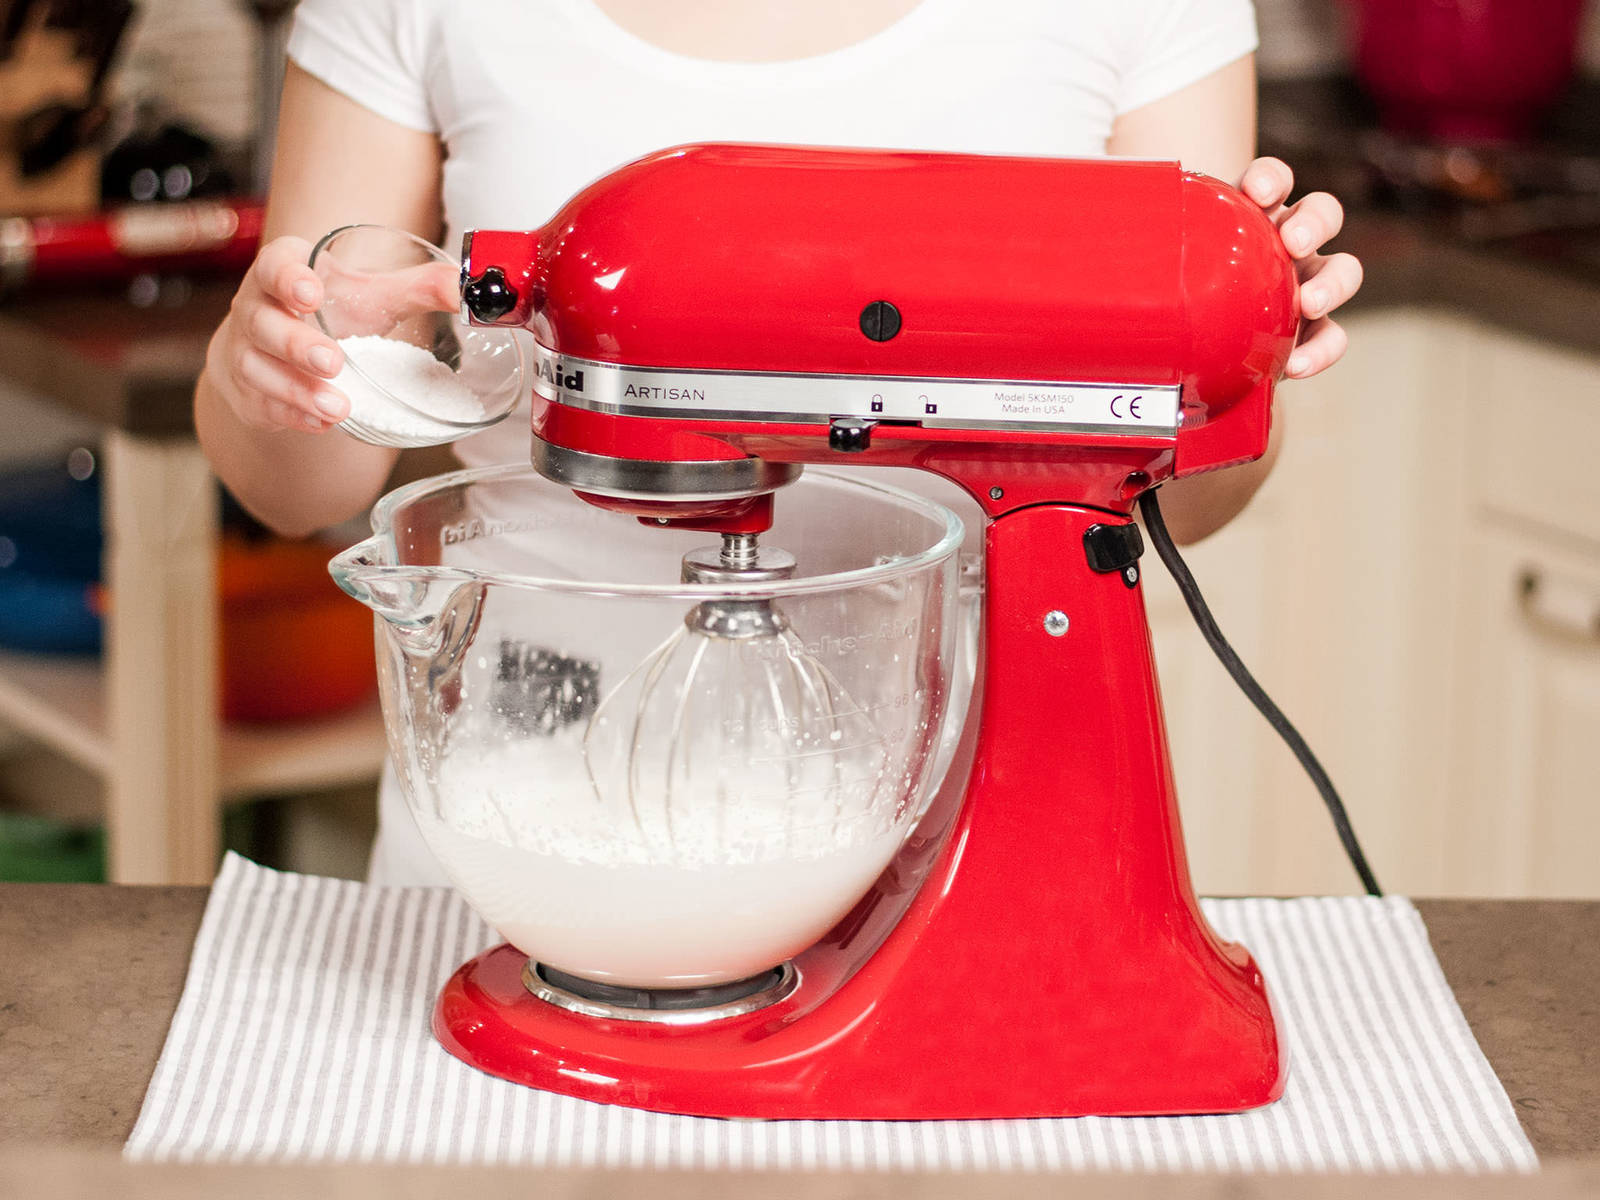 Whip cream until stiff peaks form. Add sifted confectioner's sugar towards the end and whisk in.